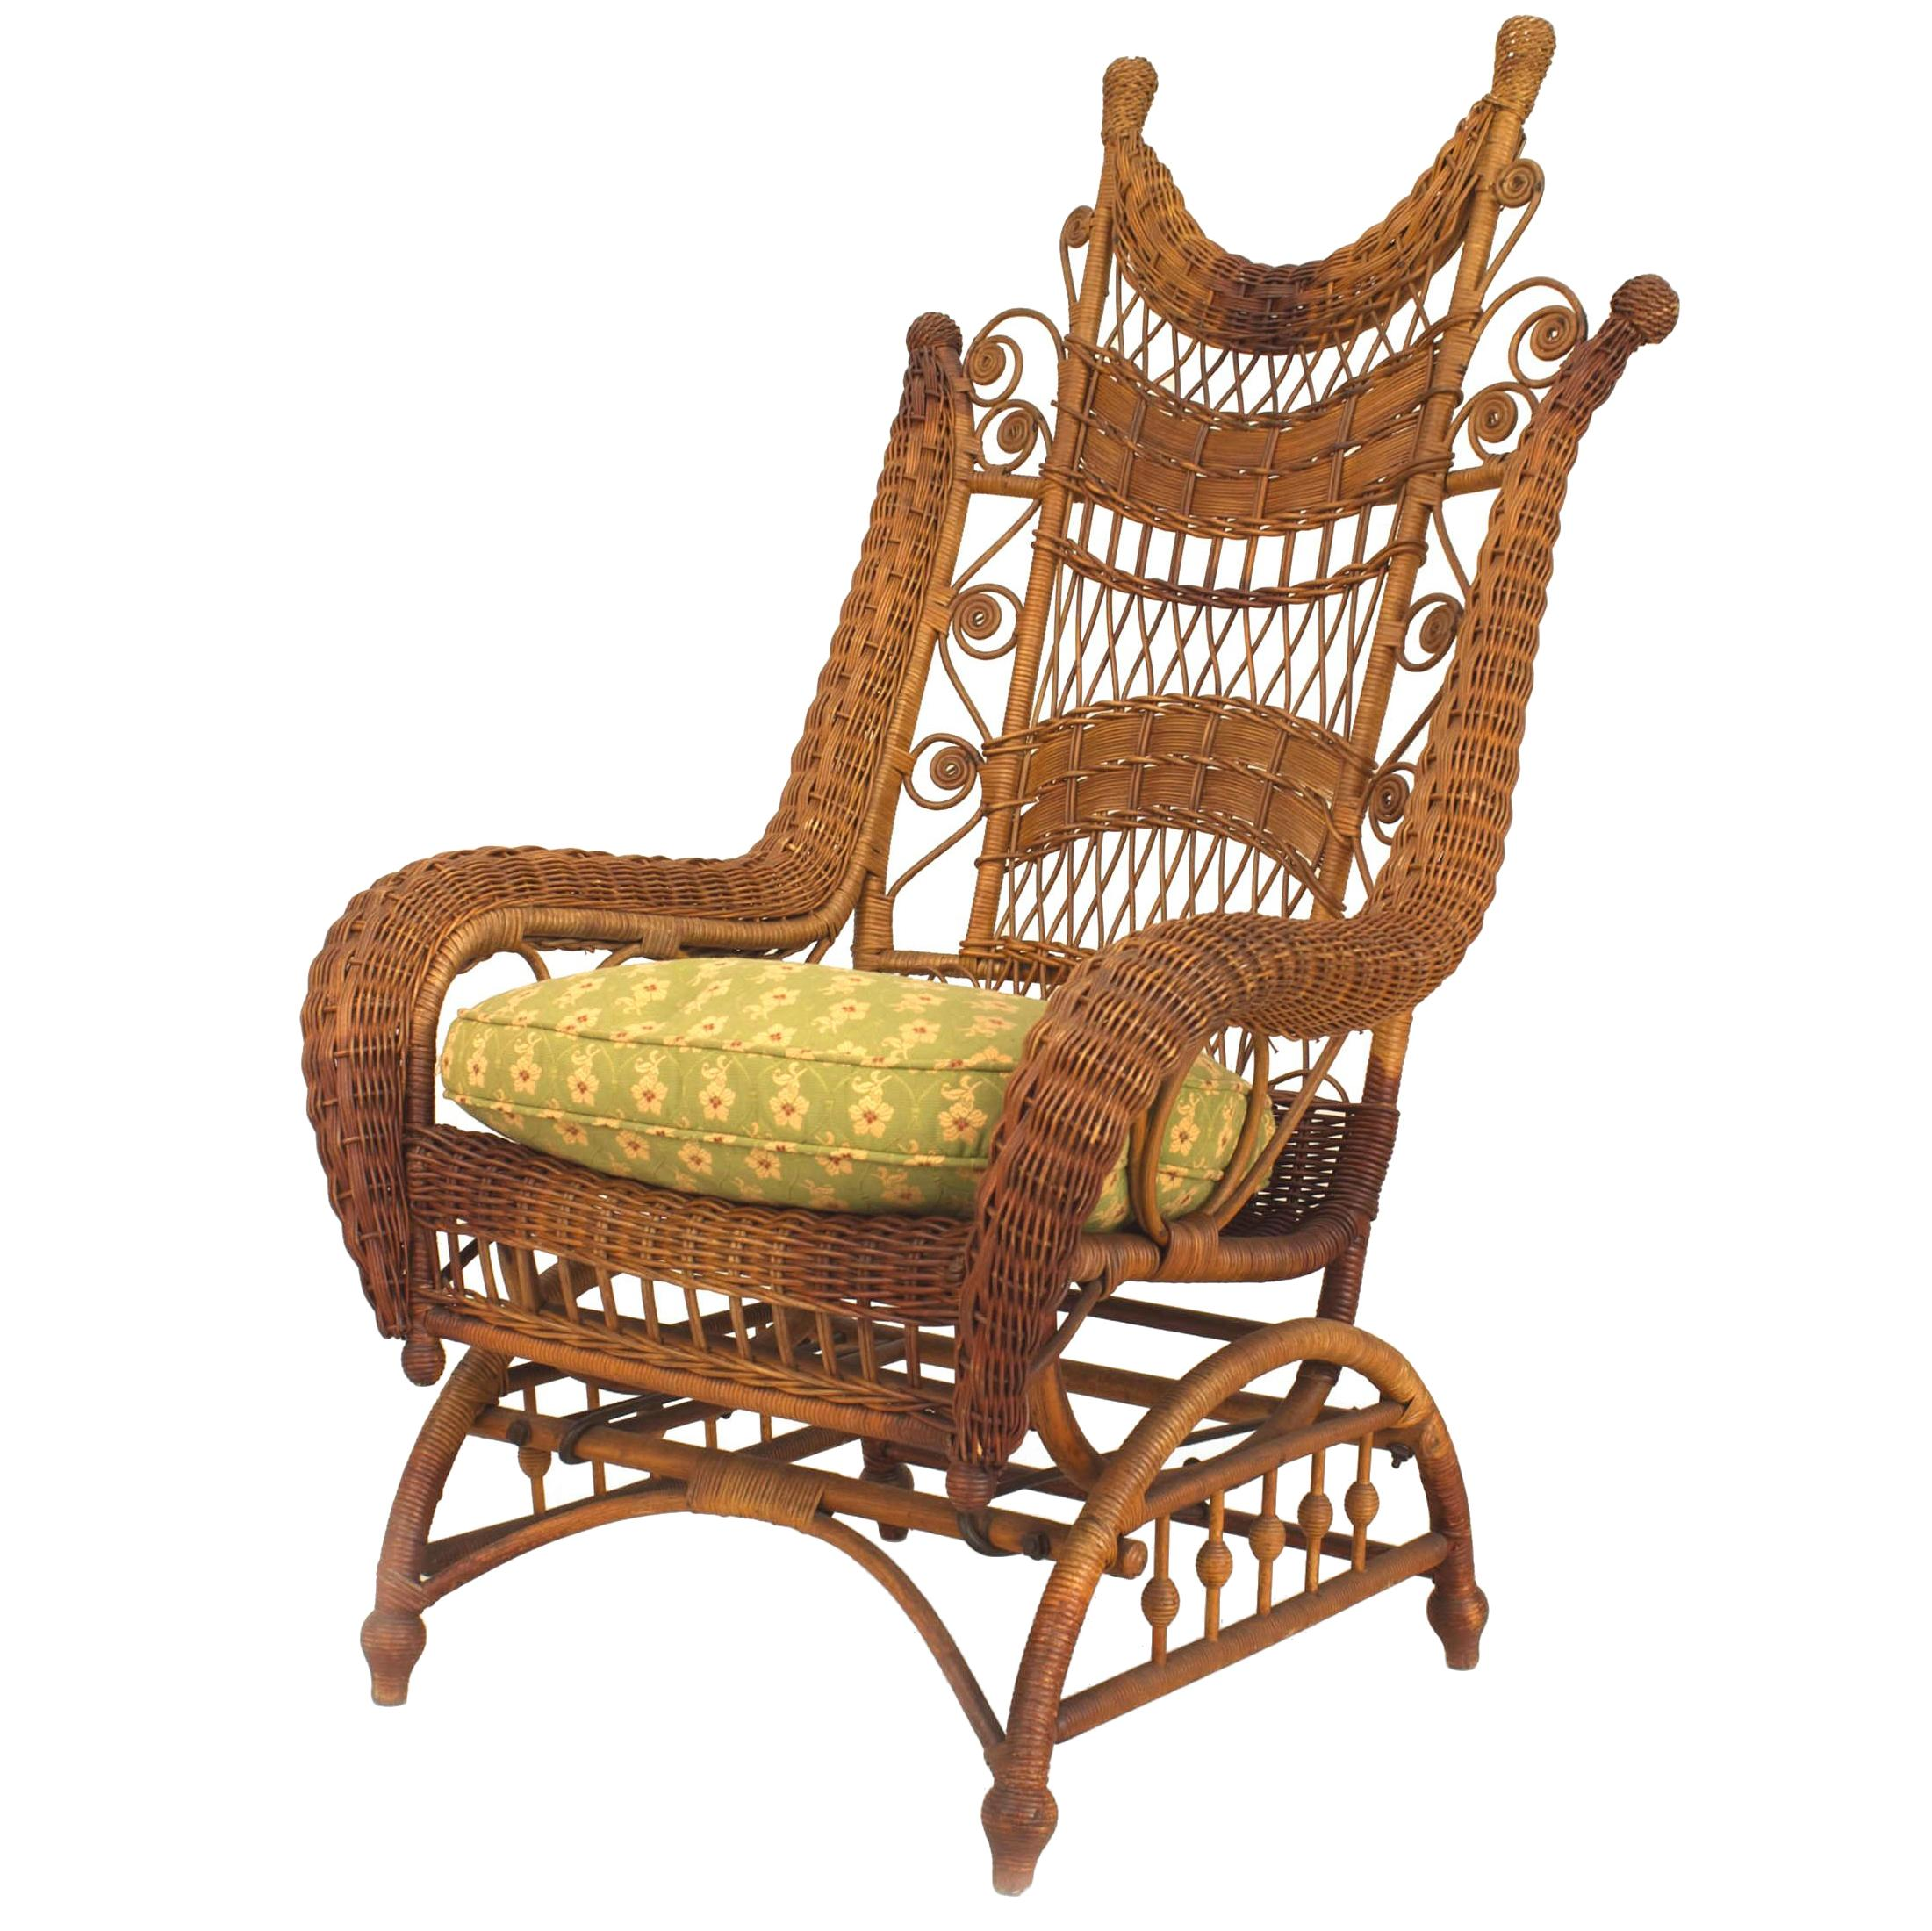 wicker rocking chairs iron outdoor melbourne 19th century american ornate high back chair for sale